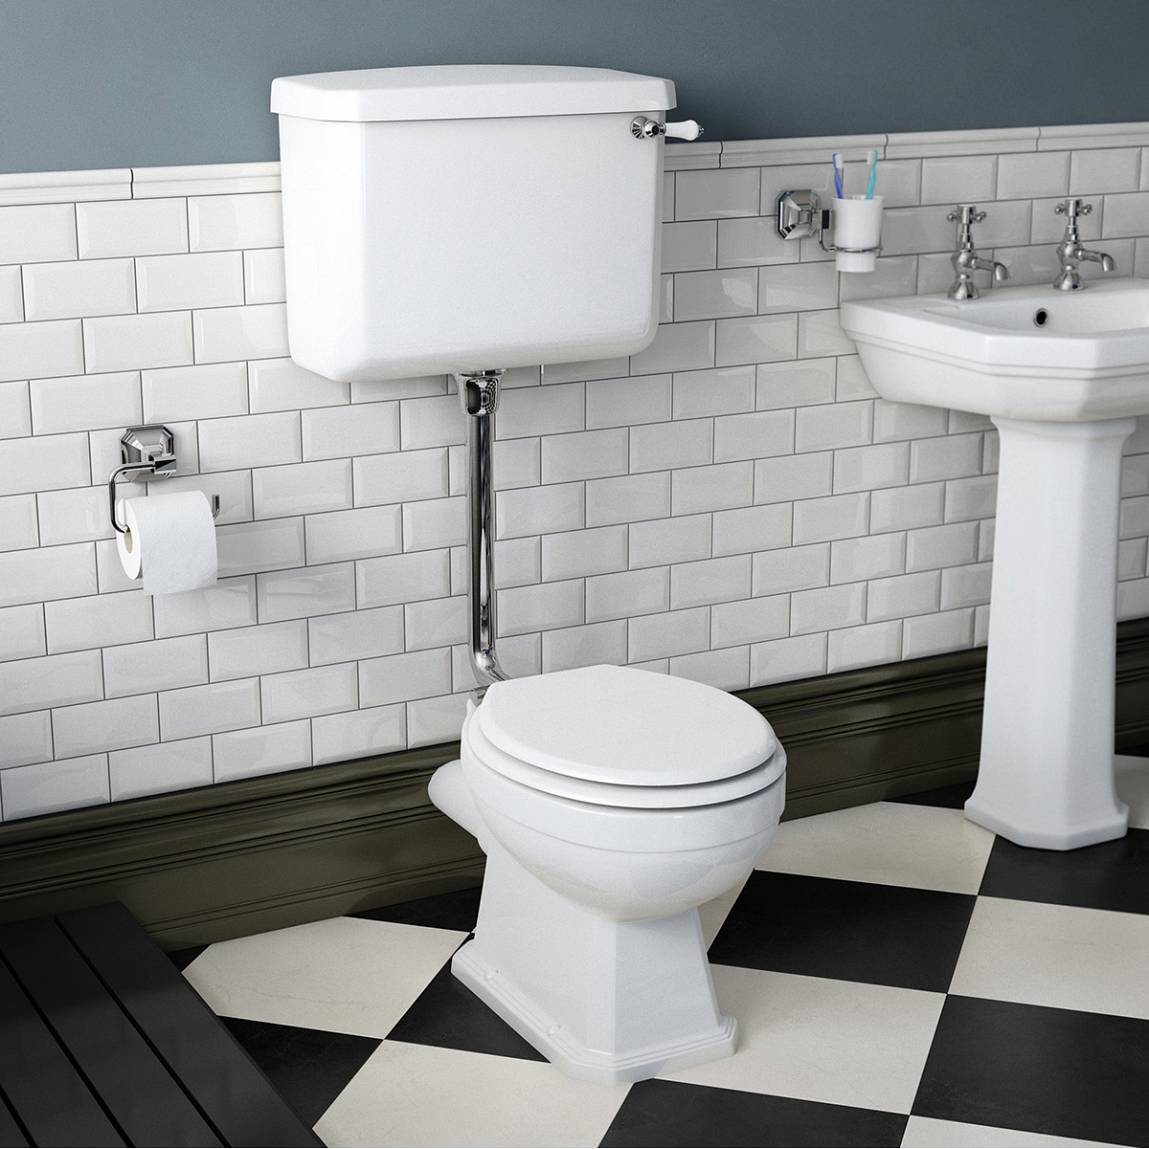 Regency low level toilet including luxury white MDF seat